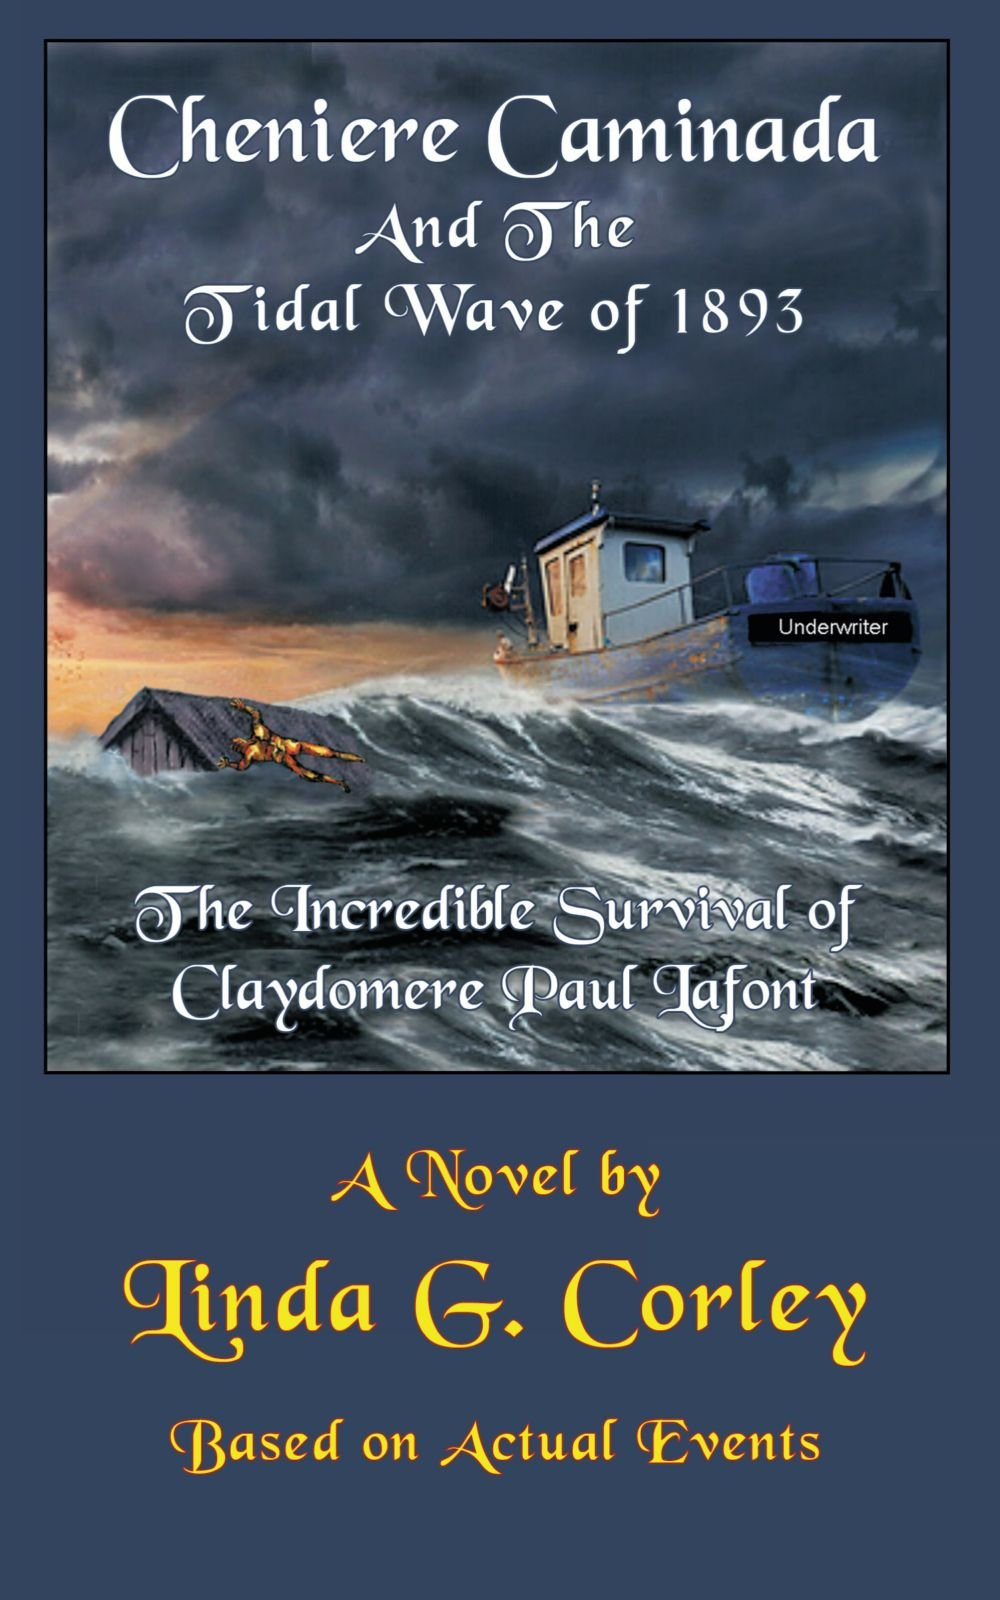 Download Cheniere Caminada And The Tidal Wave of 1893: The Incredible Survival of Claydomere Paul Lafont PDF